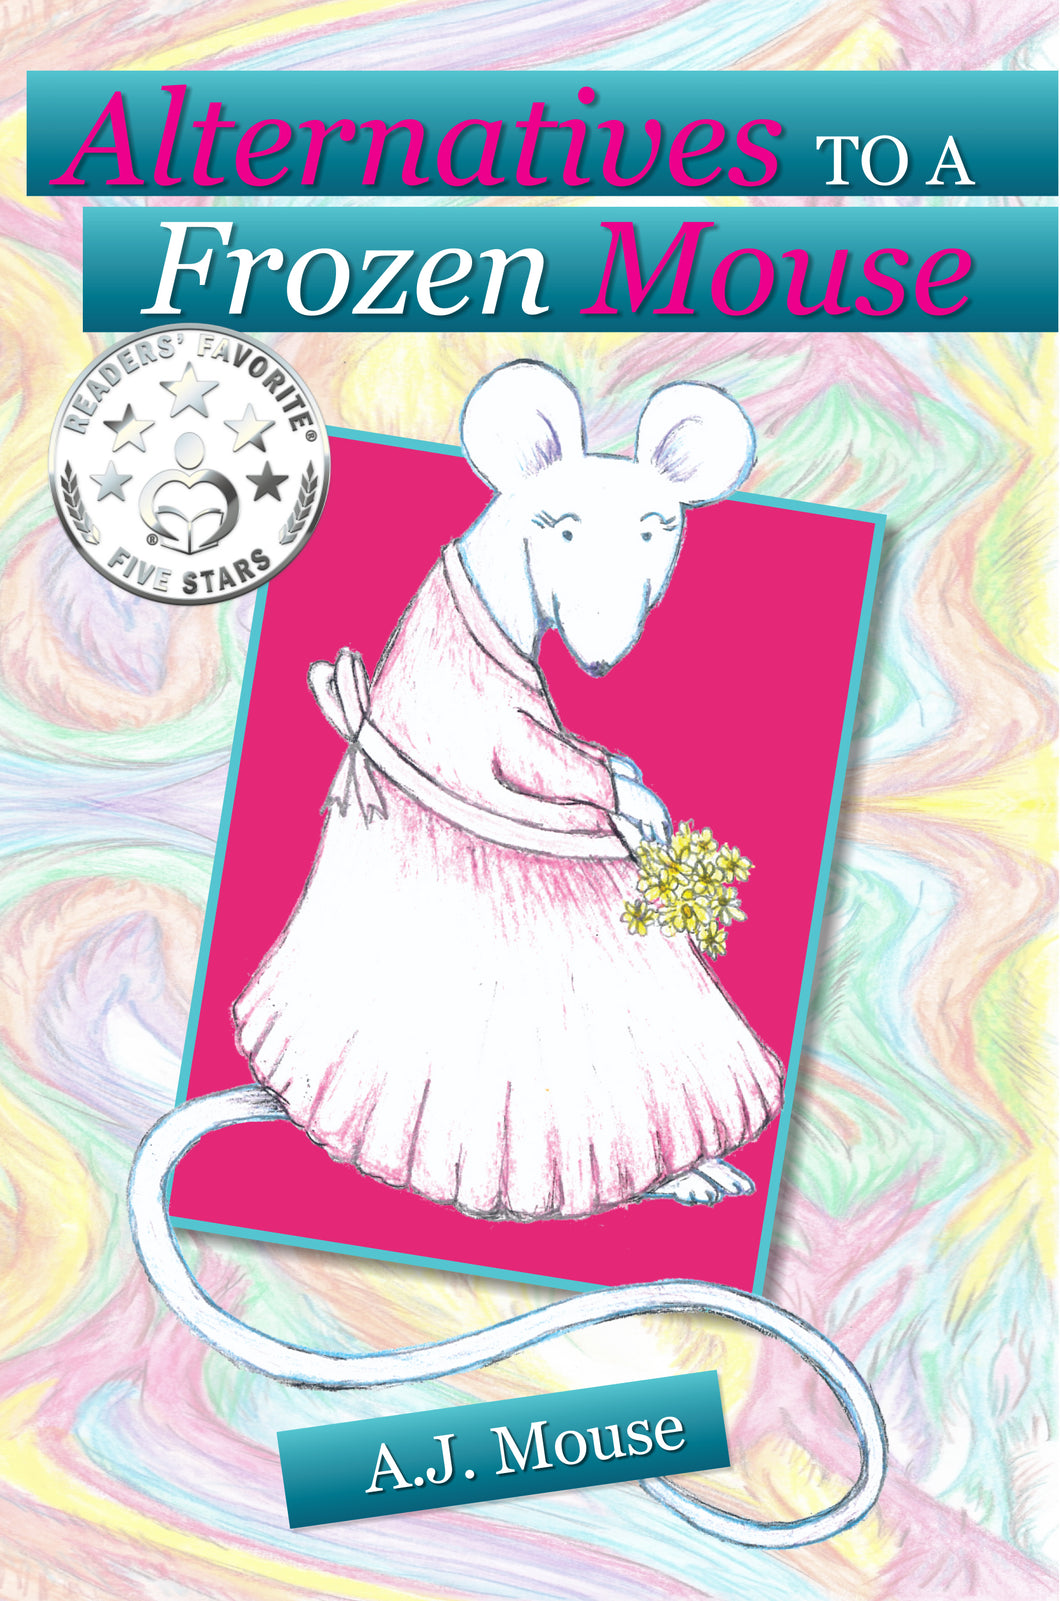 Alternatives to a Frozen Mouse